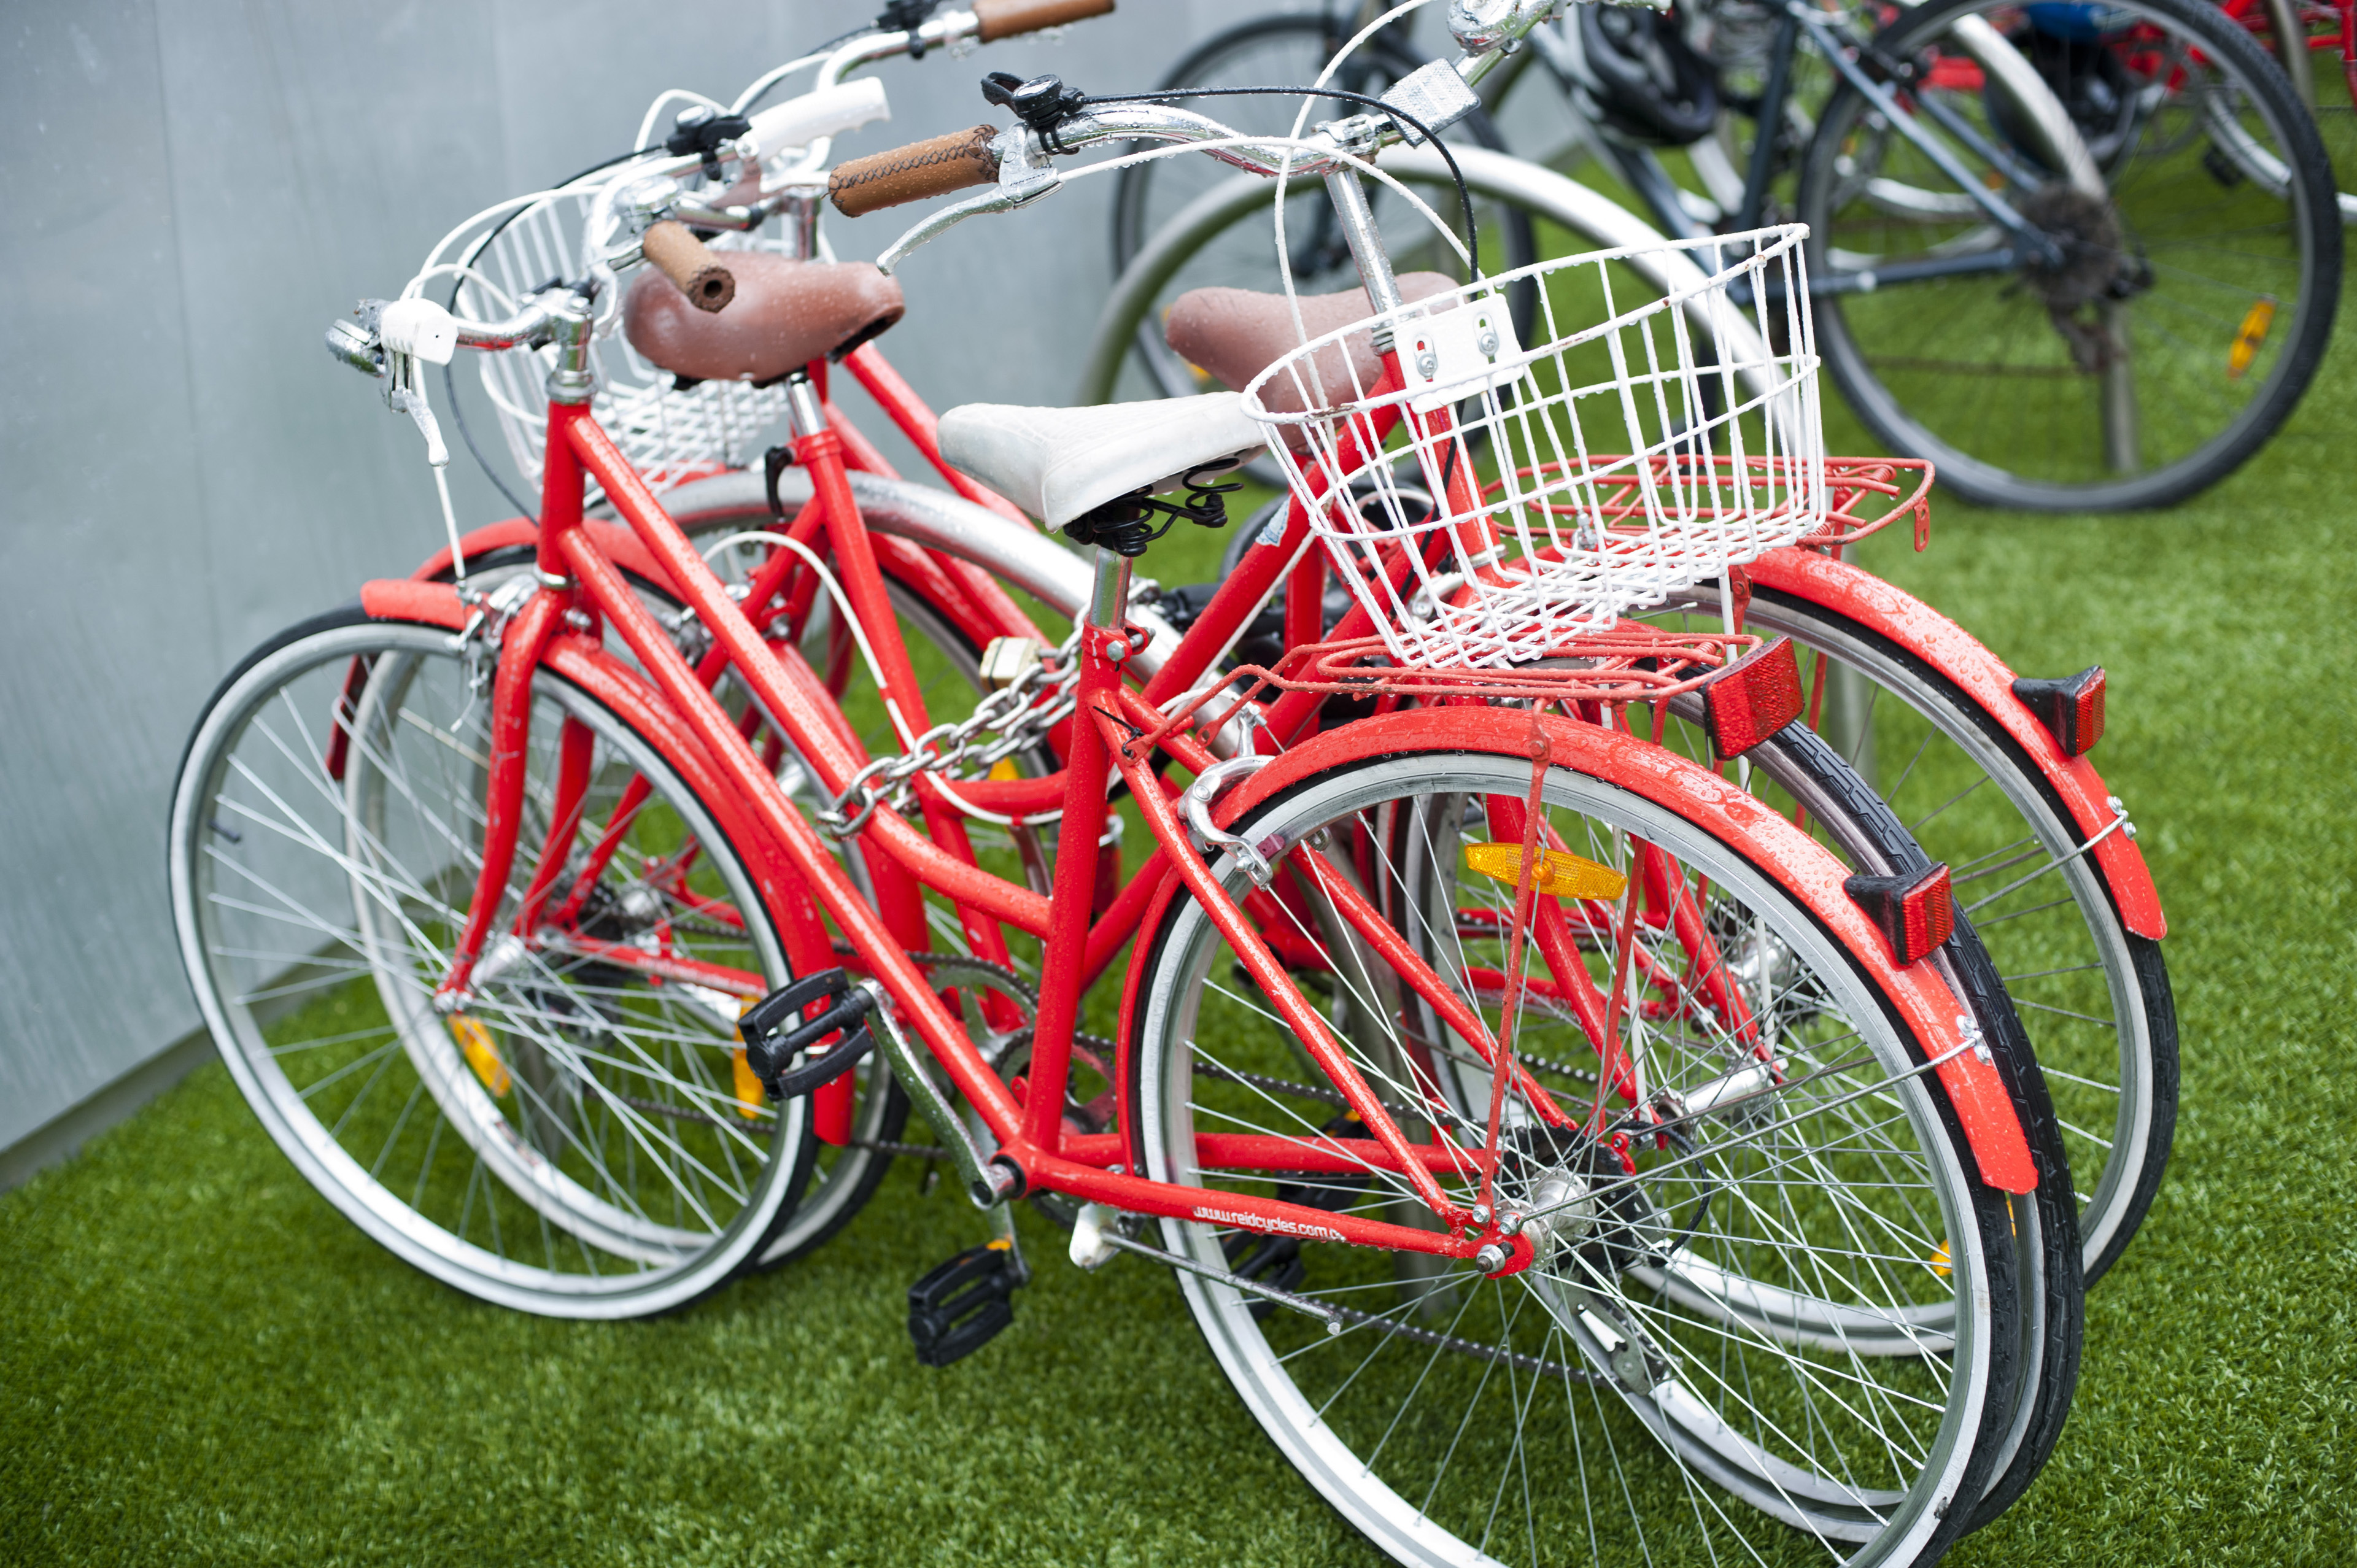 Two red bicycles parked on the green lawn outside a building conceptual of exercise, fitness and health